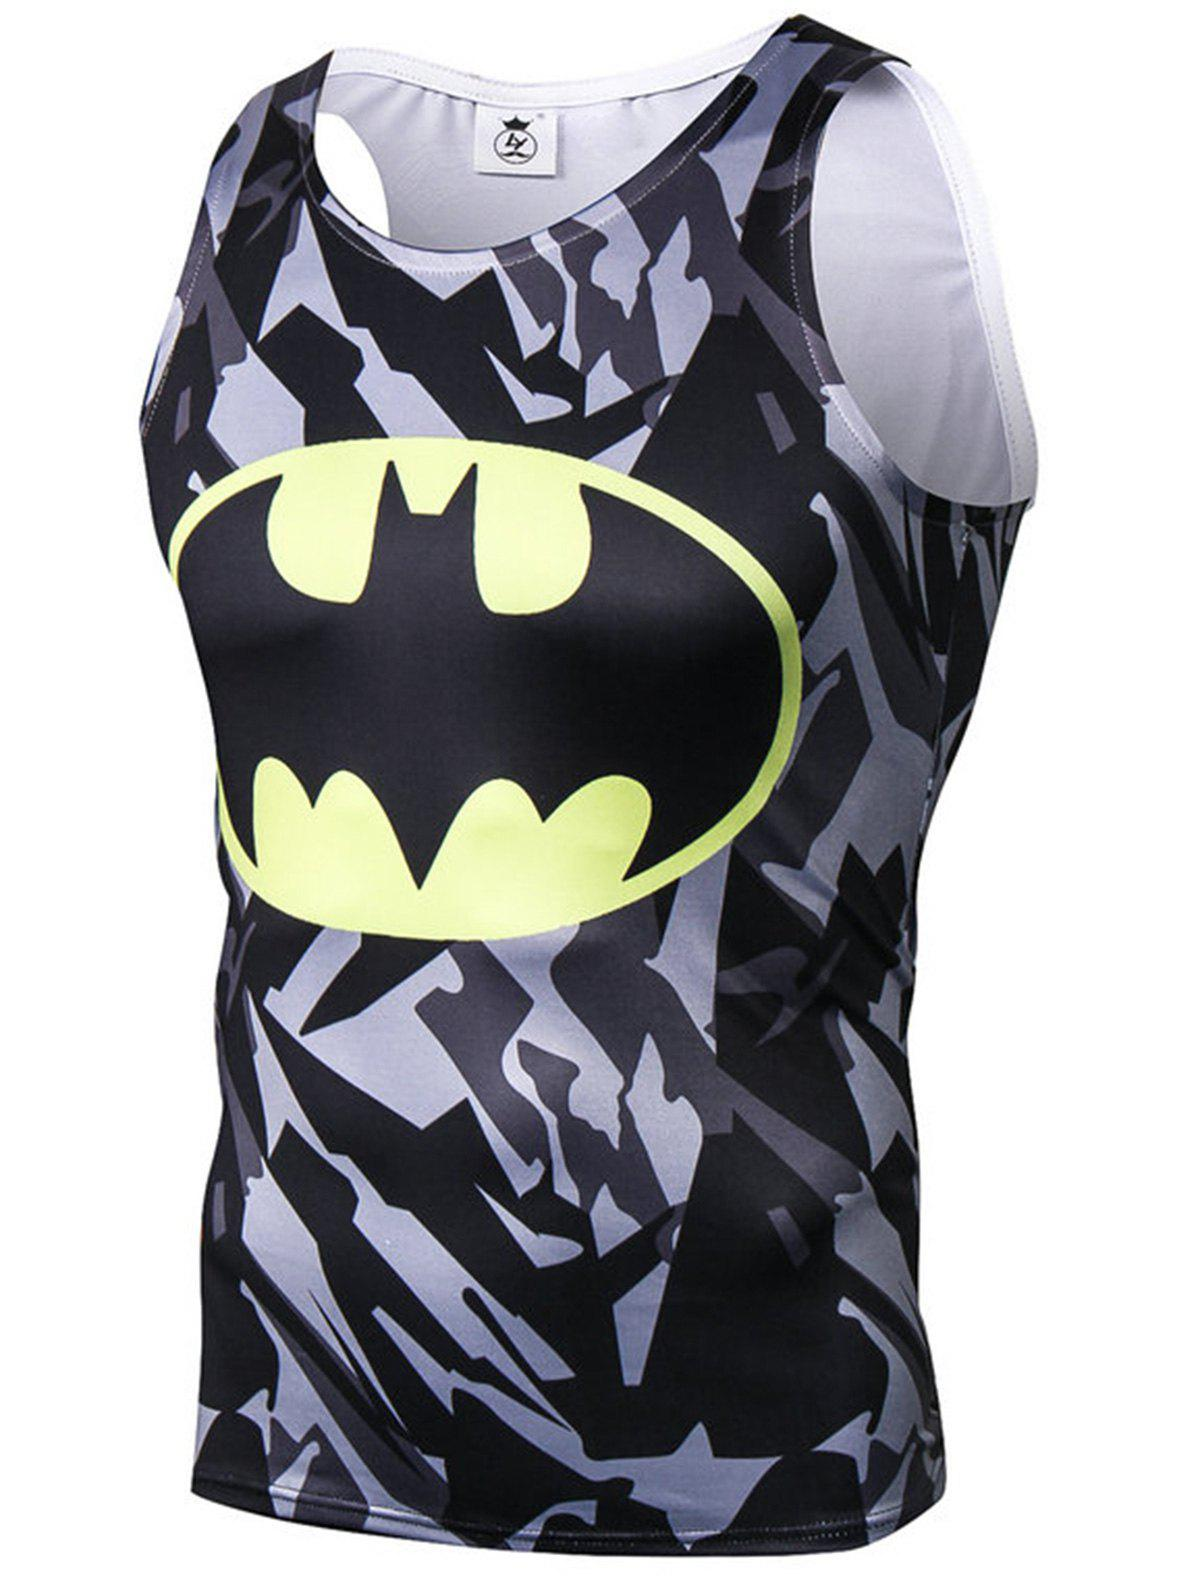 Store Camouflage Bat Print Tank Top